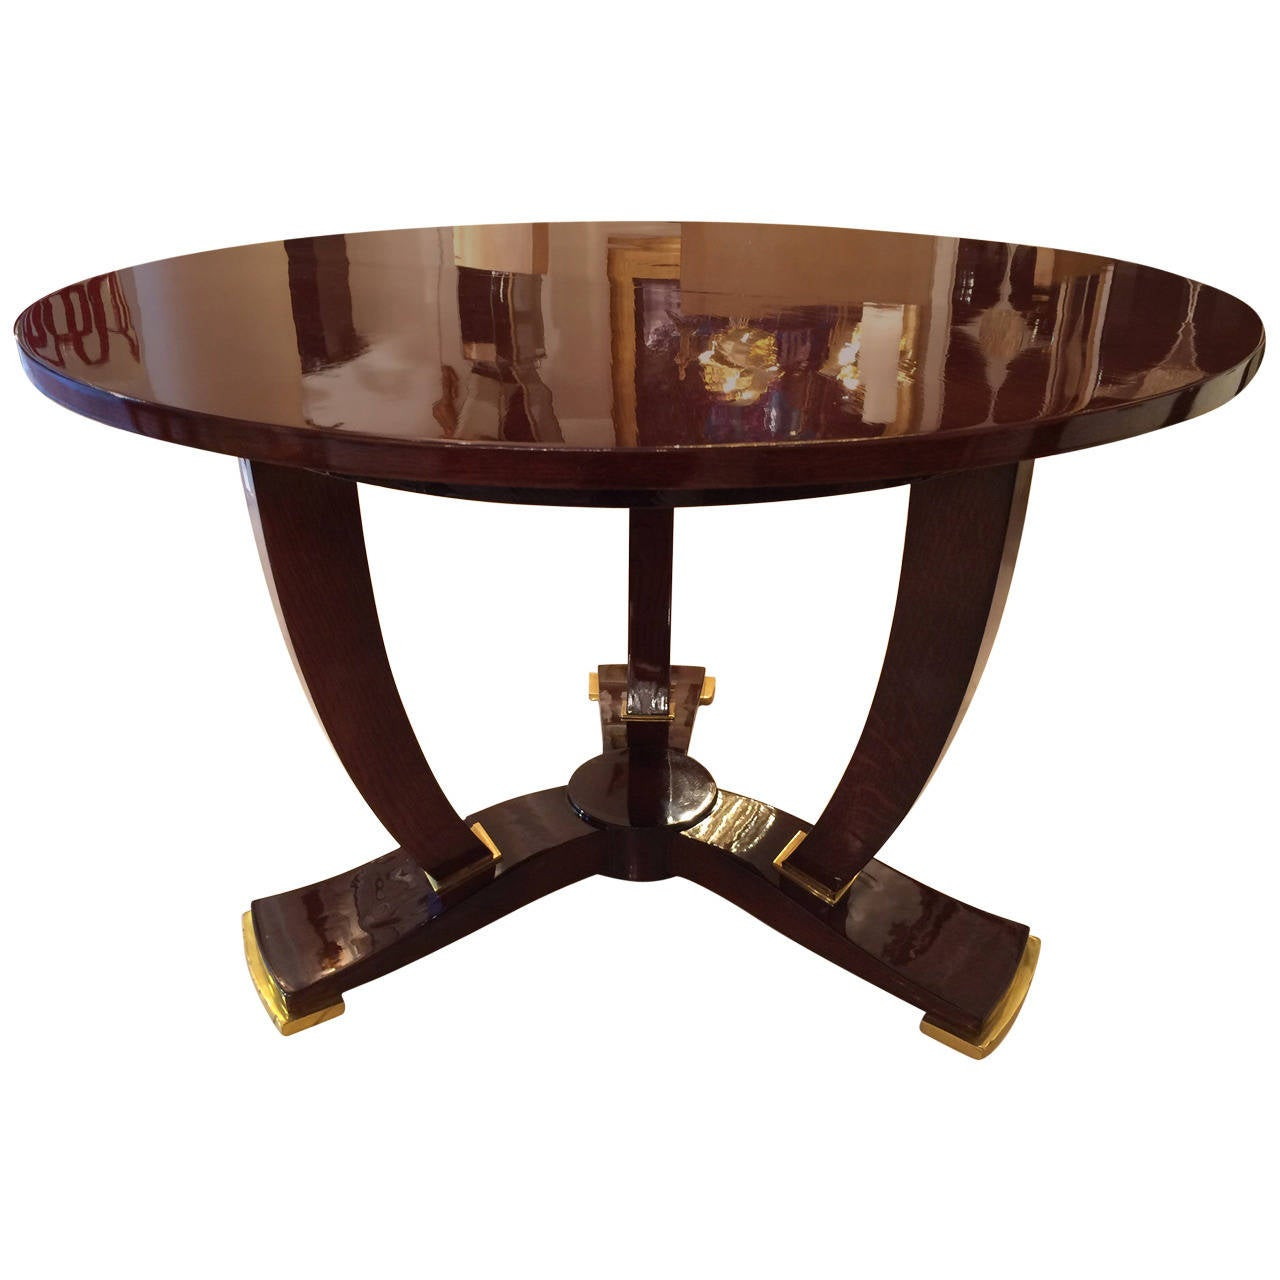 jules leleu art deco coffee table at 1stdibs. Black Bedroom Furniture Sets. Home Design Ideas